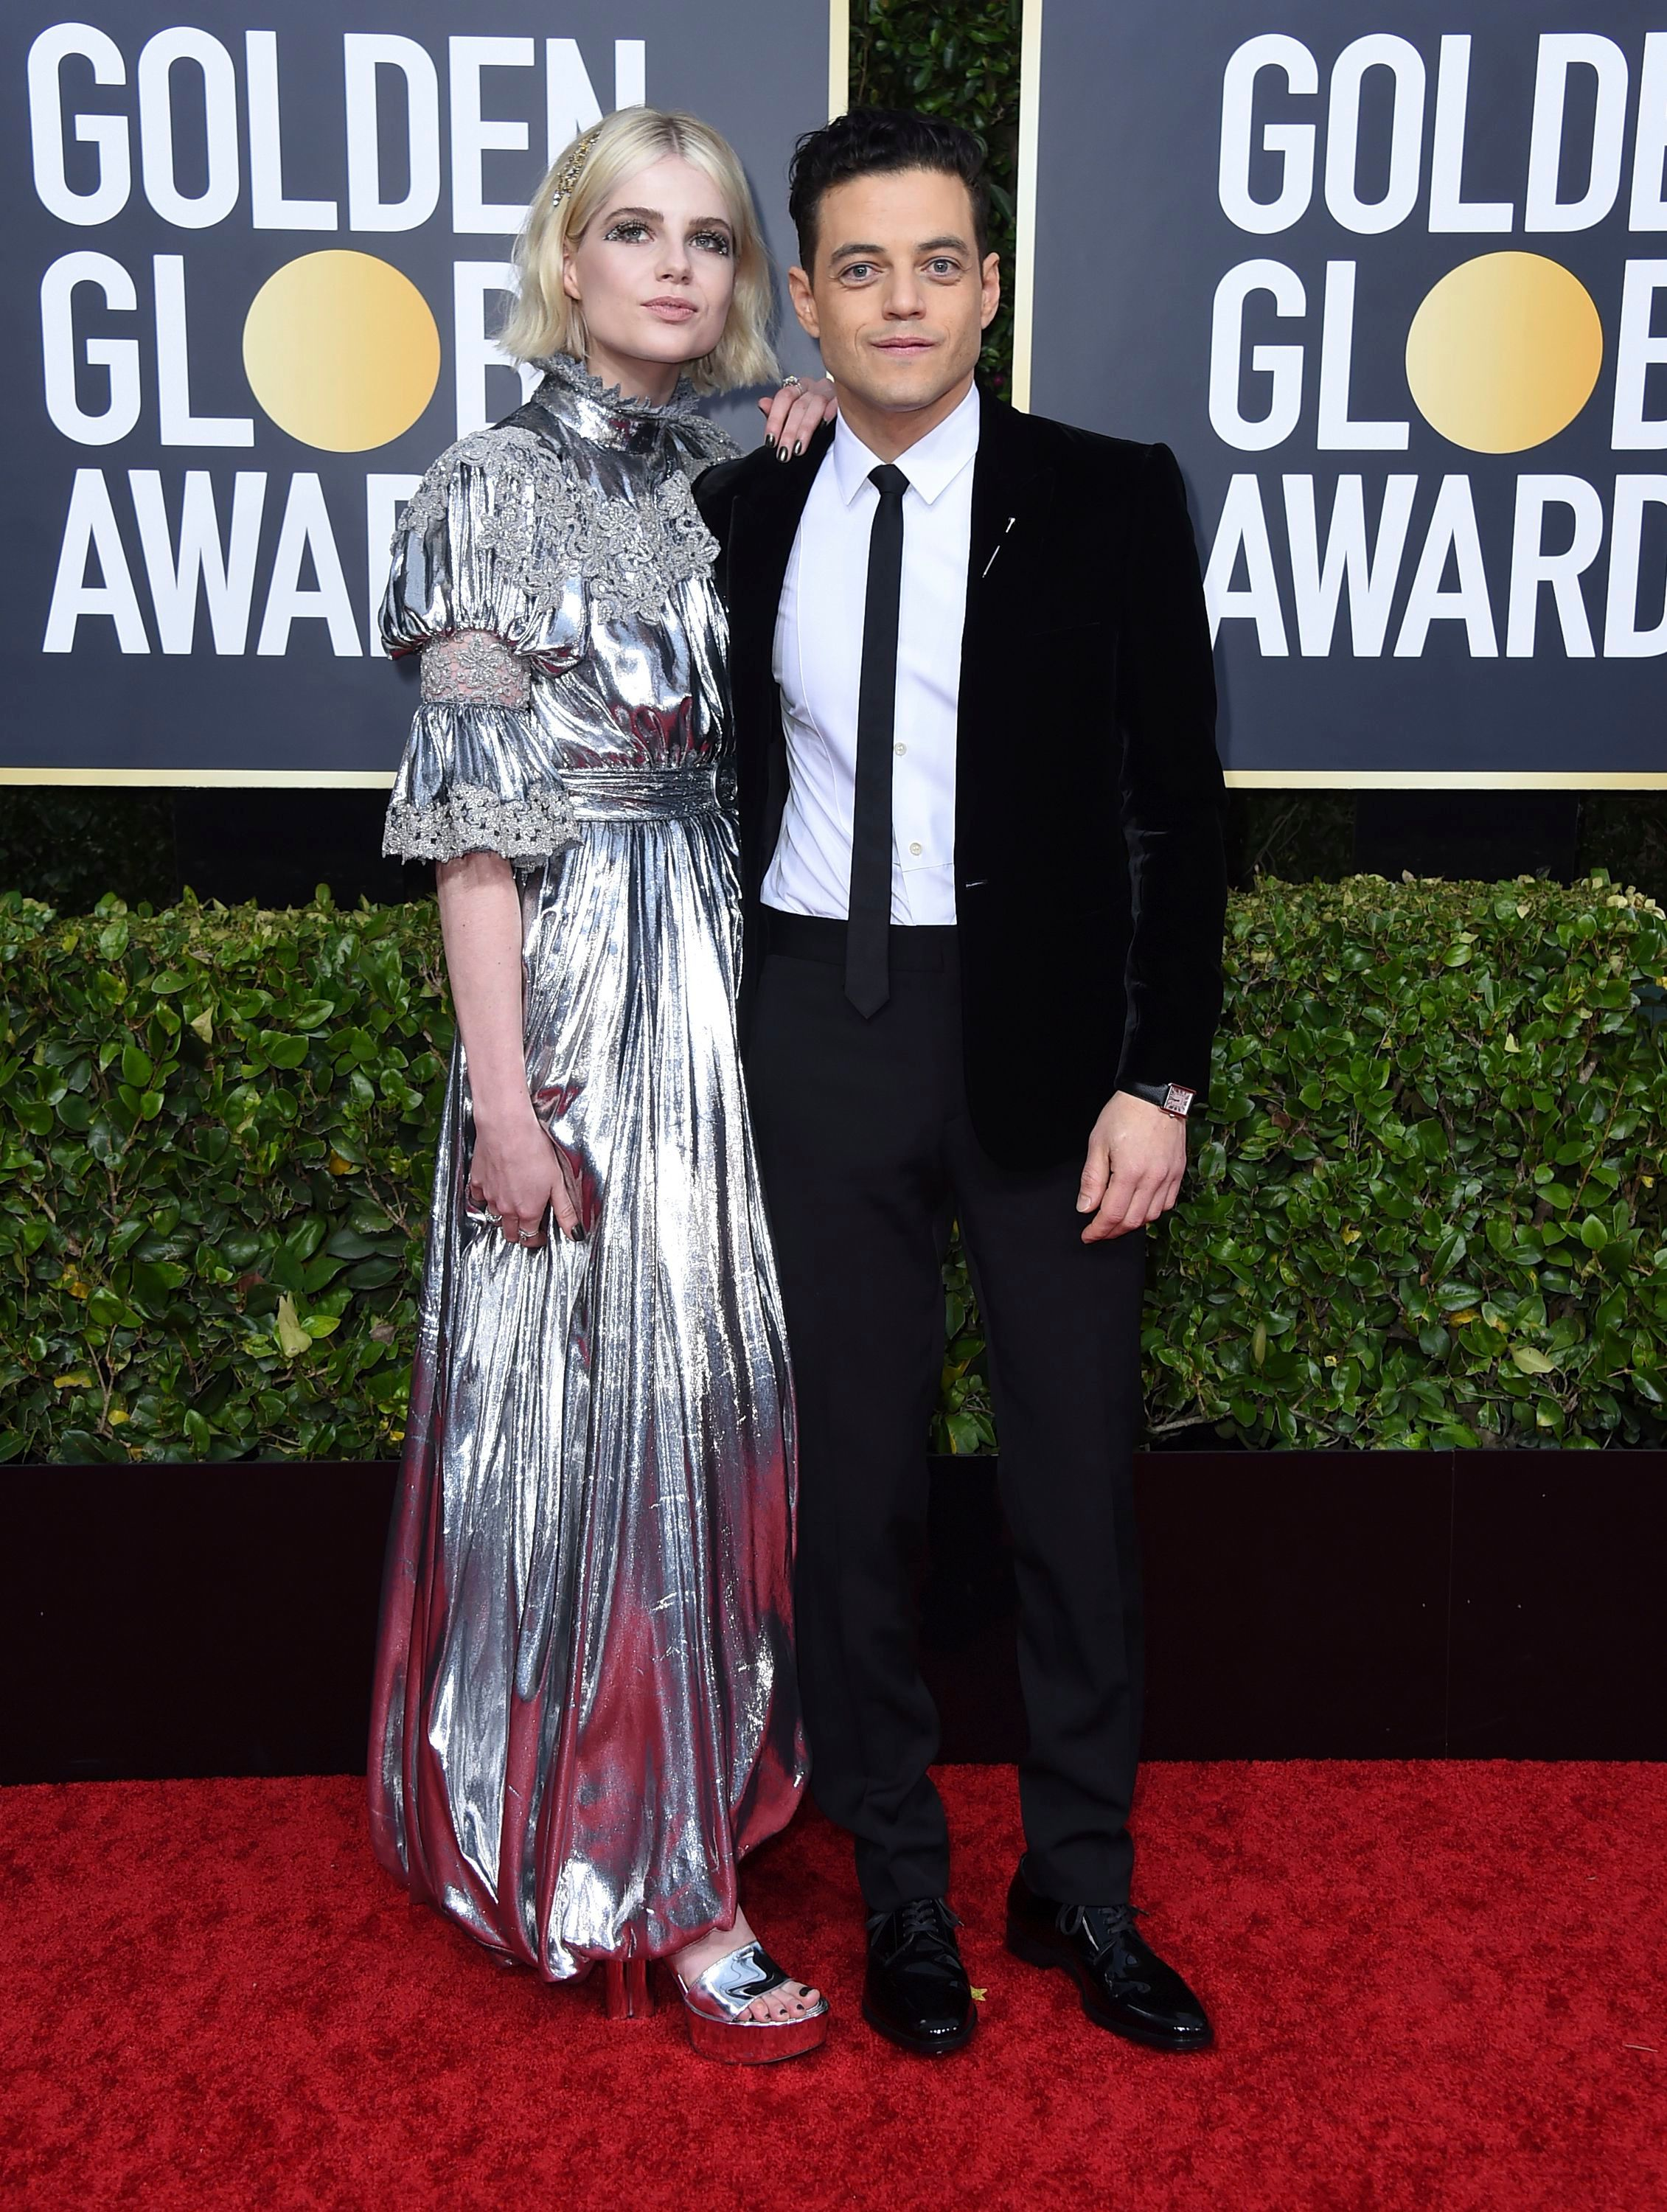 Lucy Boynton, Rami Malek. Lucy Boynton, left, and Rami Malek arrive at the 77th annual Golden Globe Awards at the Beverly Hilton Hotel, in Beverly Hills, Calif77th Annual Golden Globe Awards - Arrivals, Beverly Hills, USA - 05 Jan 2020